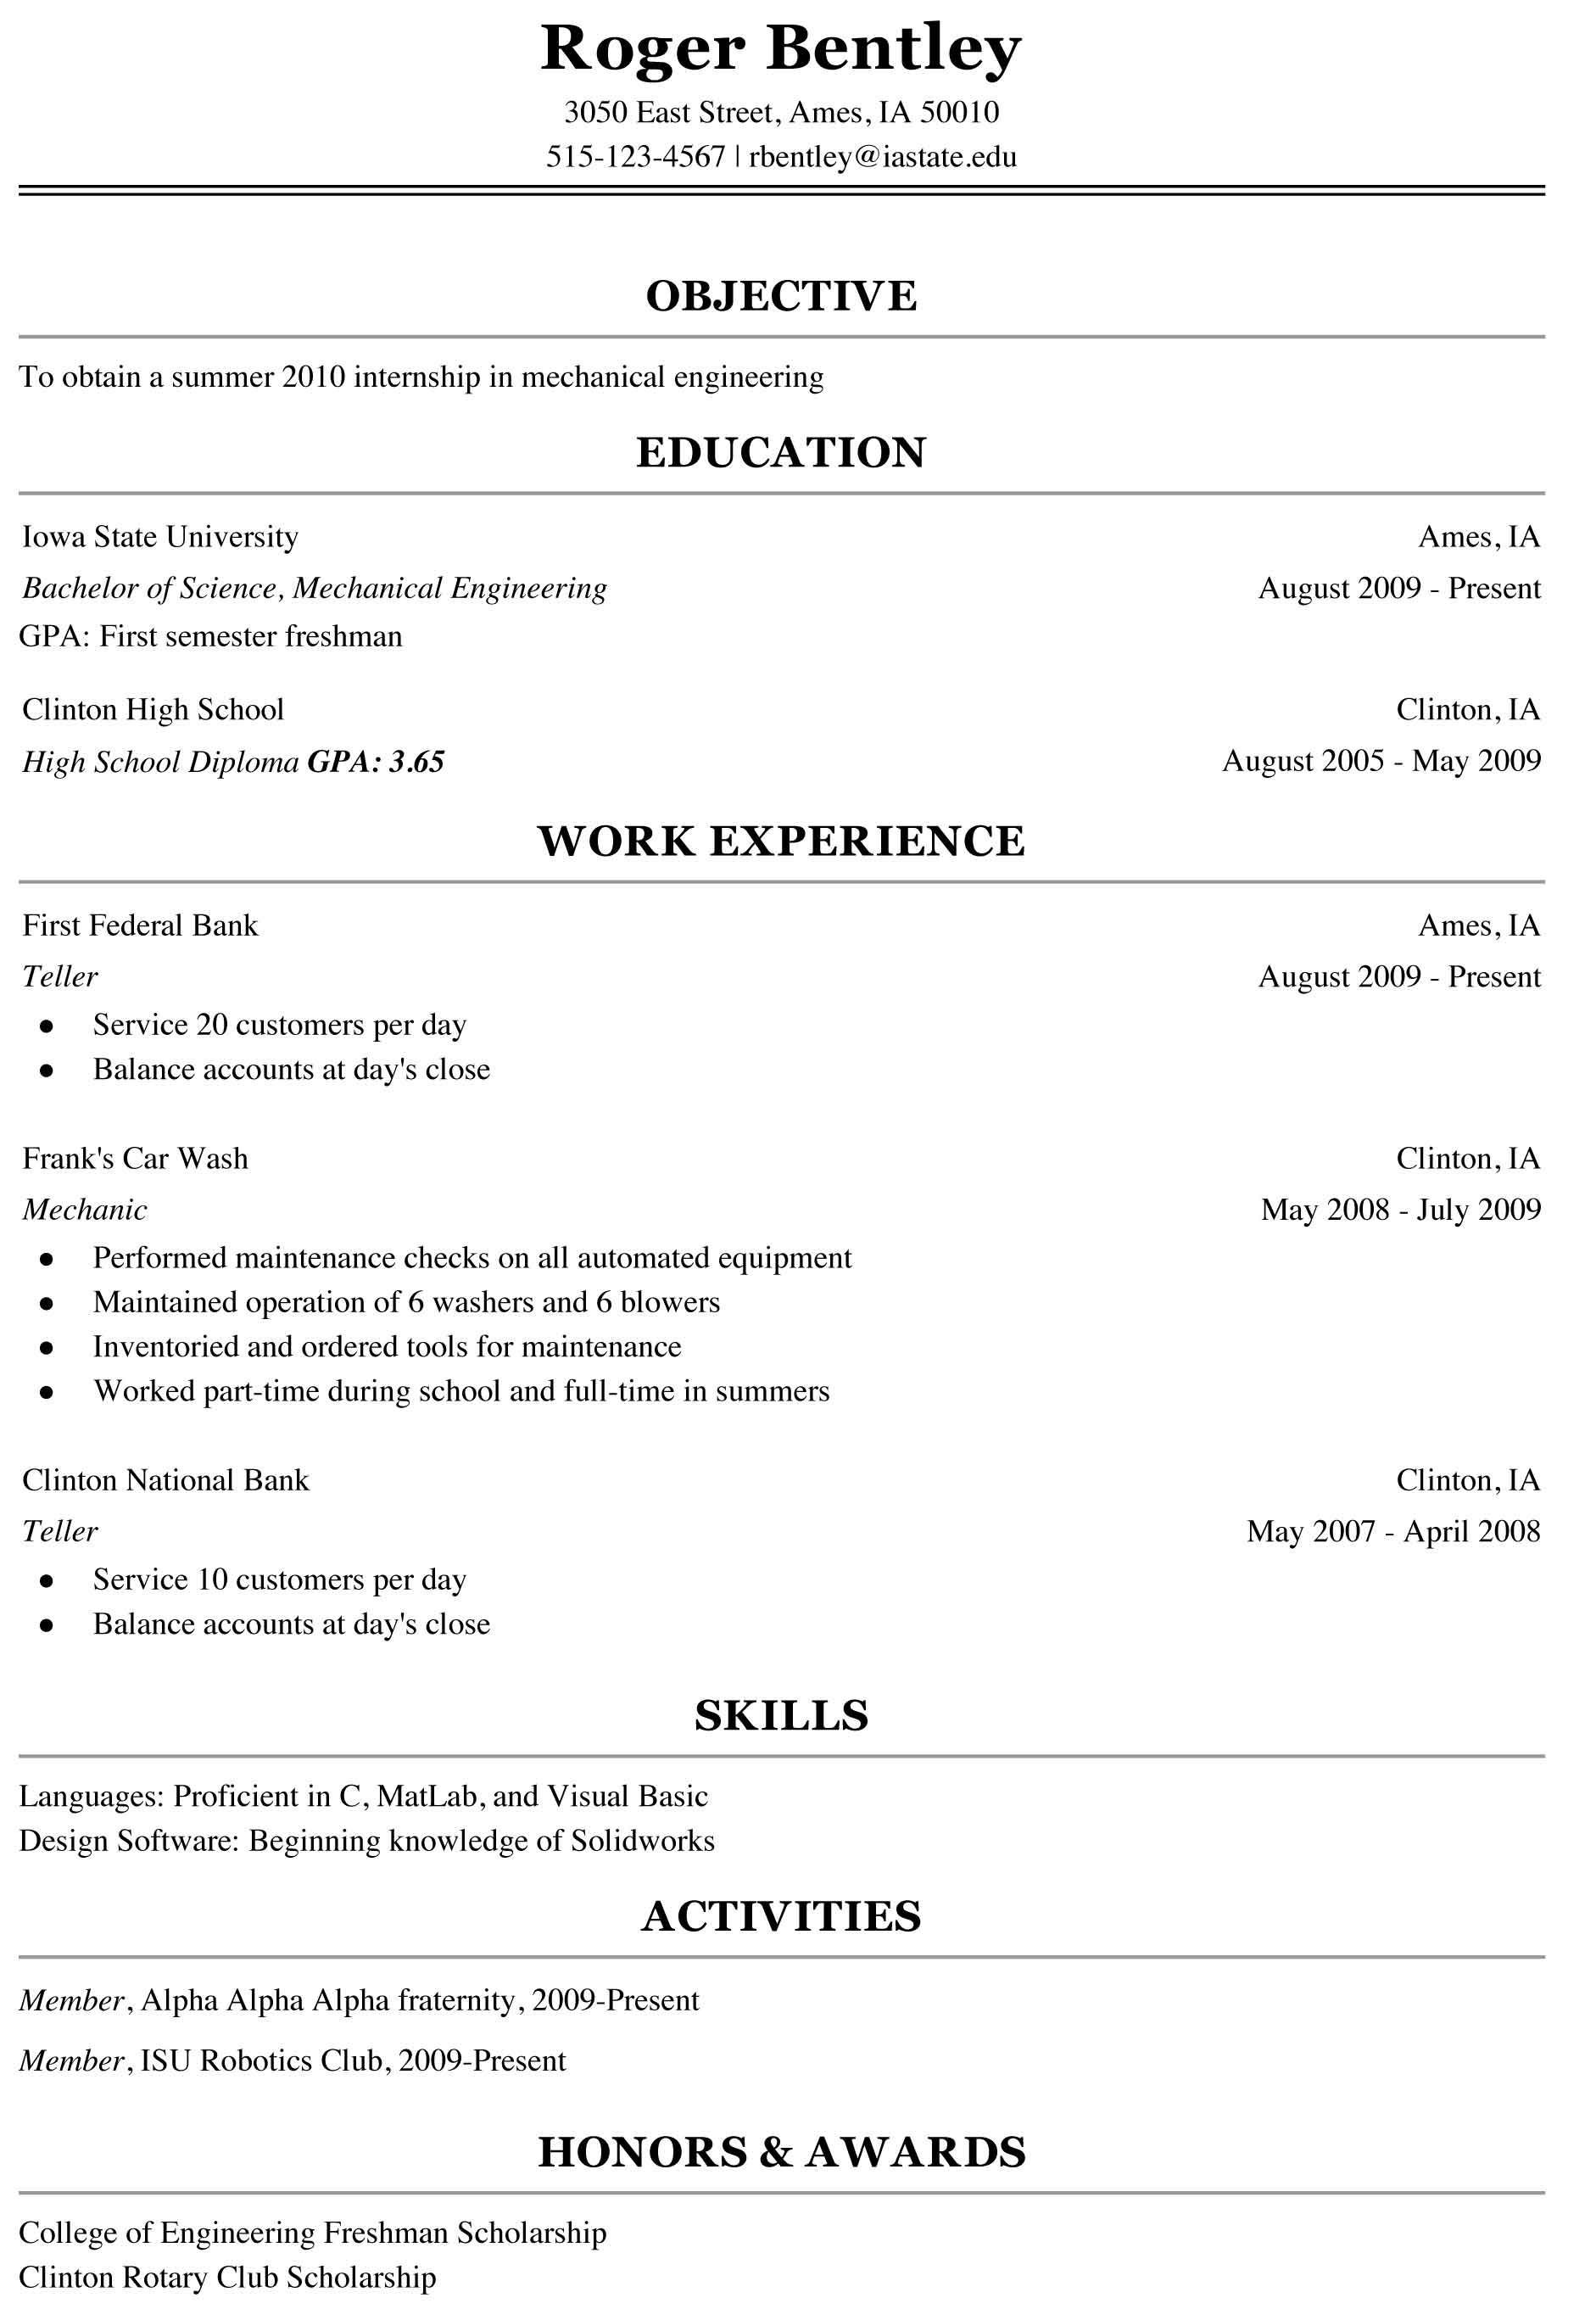 012 College Student Resume Template Remarkable Ideas Reddit Within